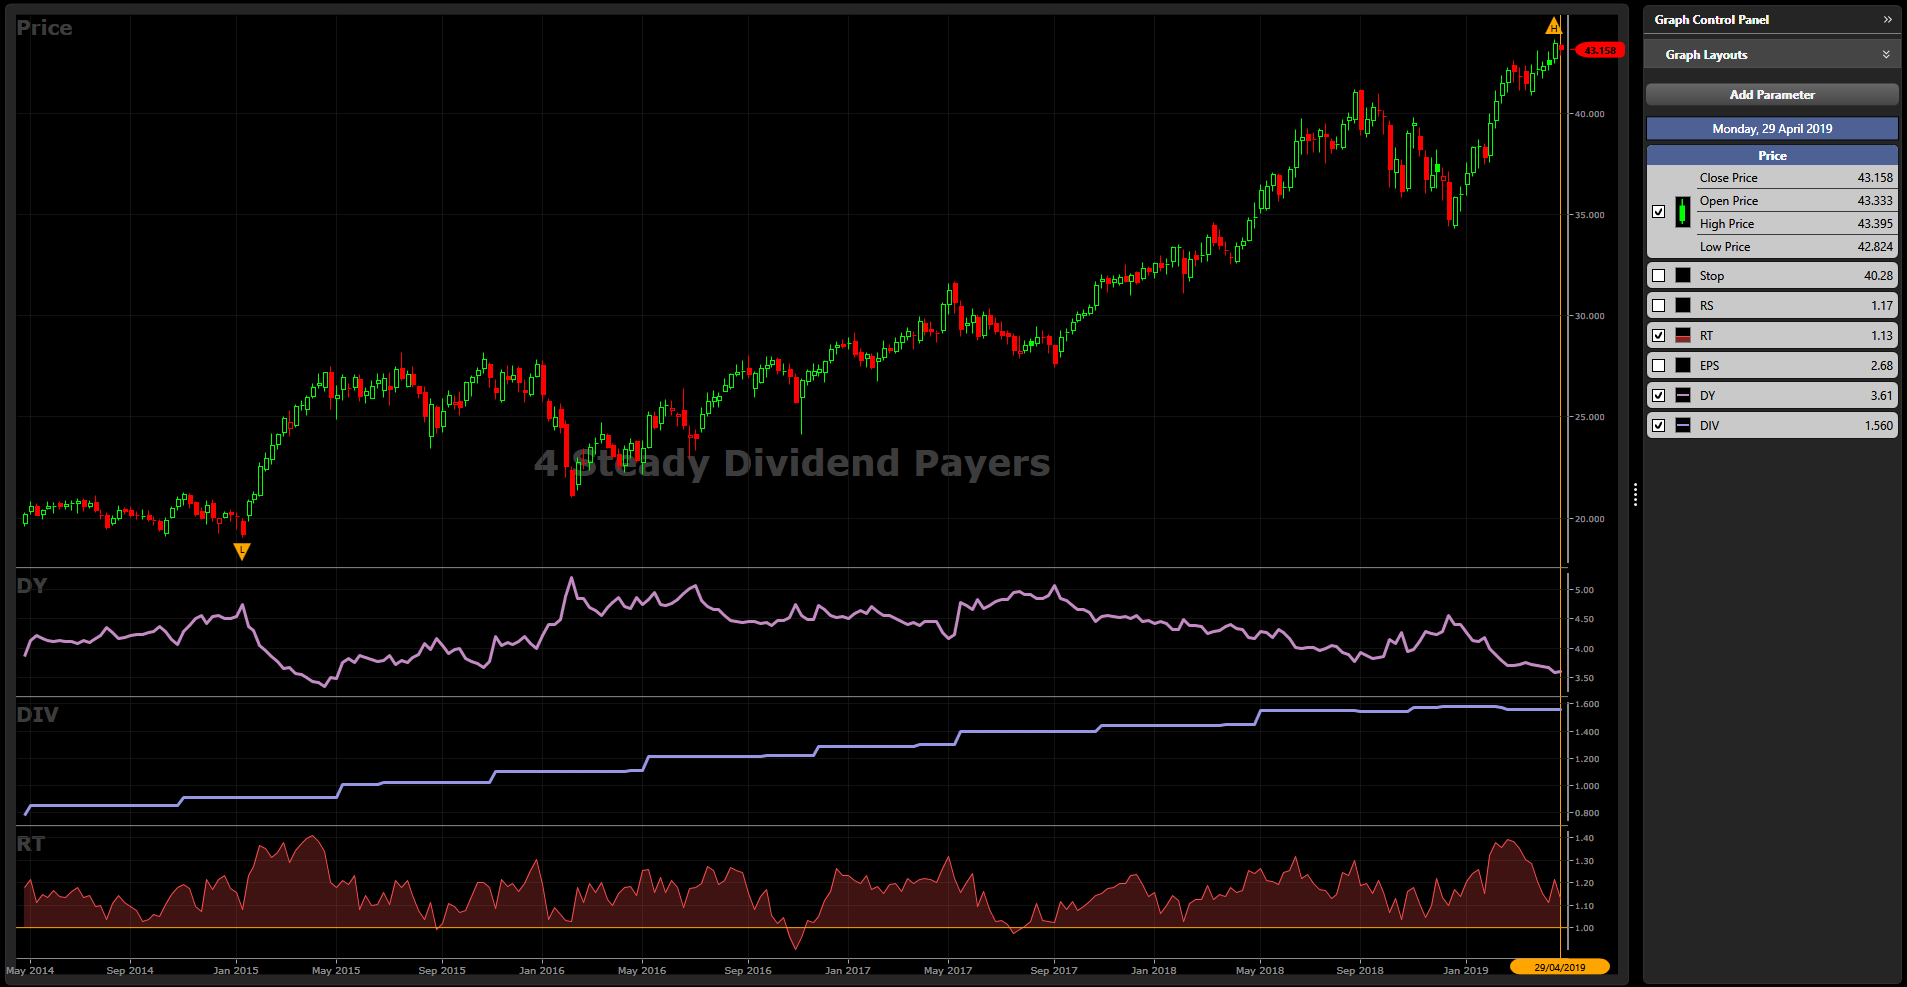 Top 4 Dividend Payers